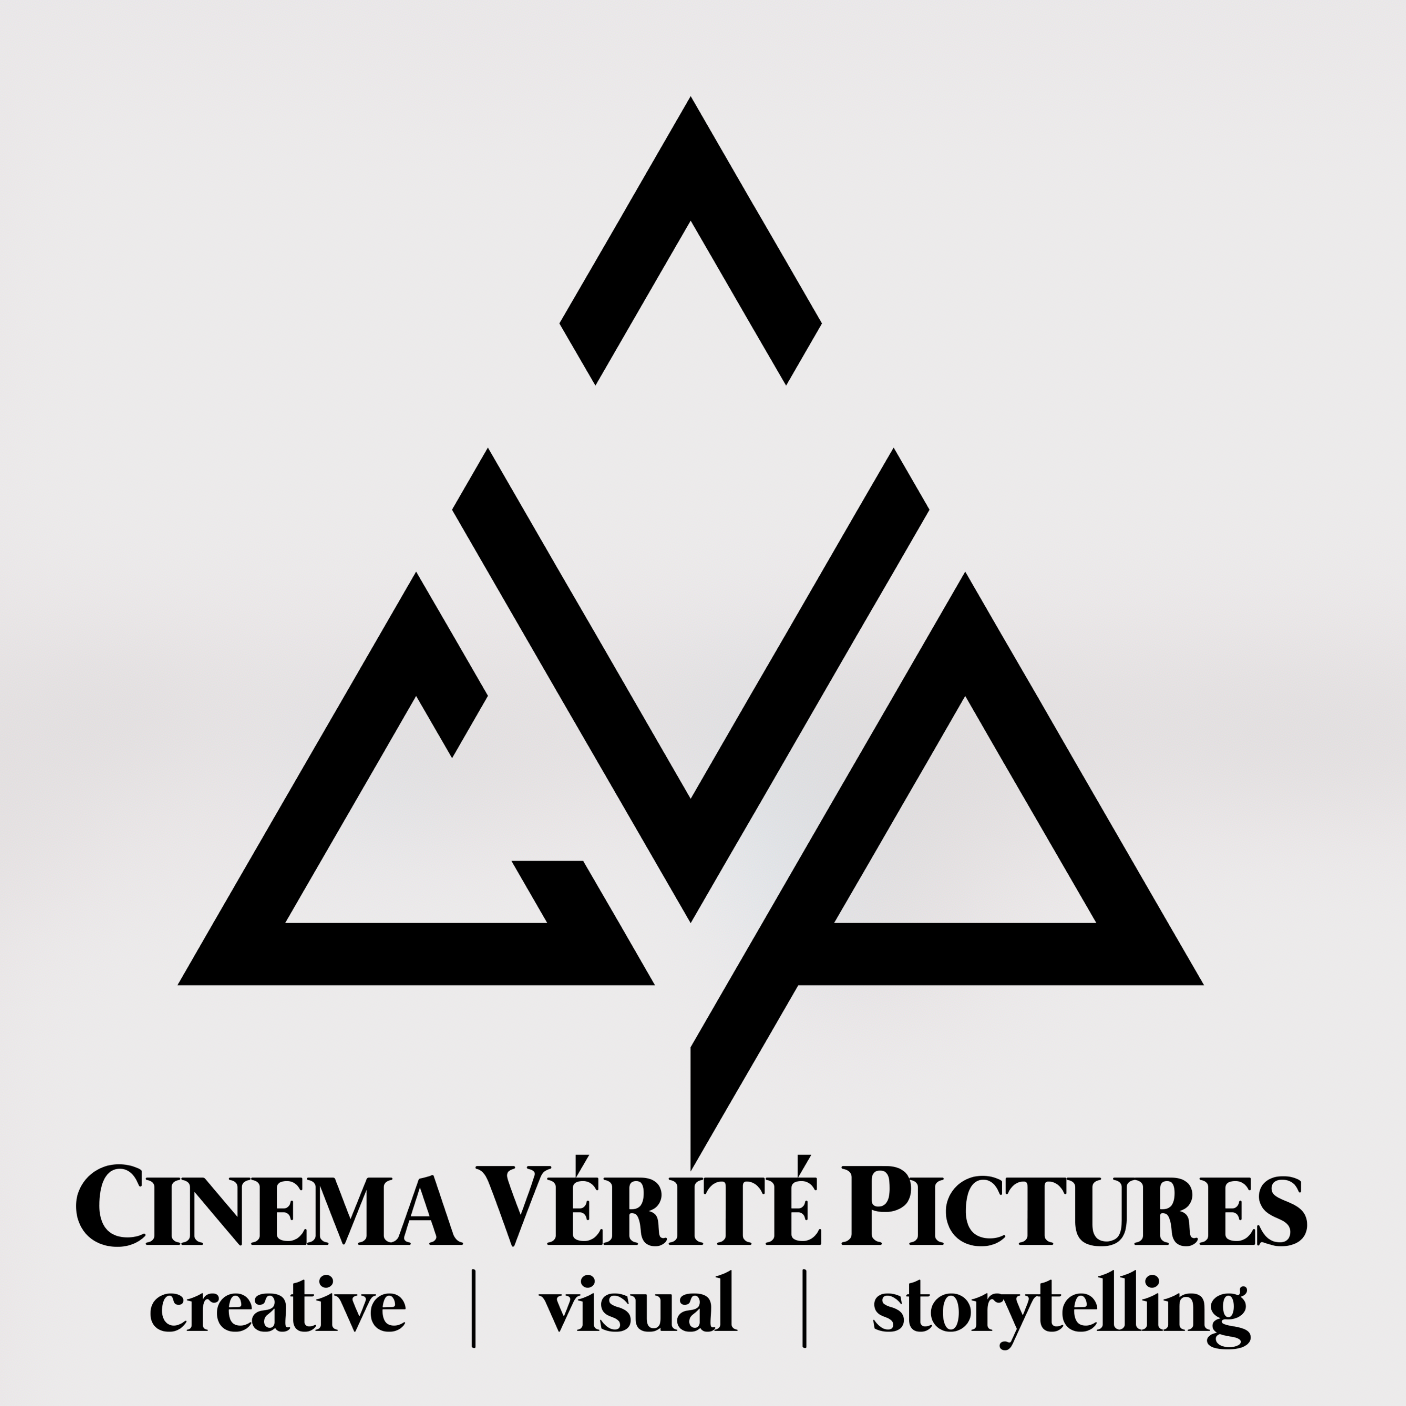 cinema Vérité pictures for crafters highlights